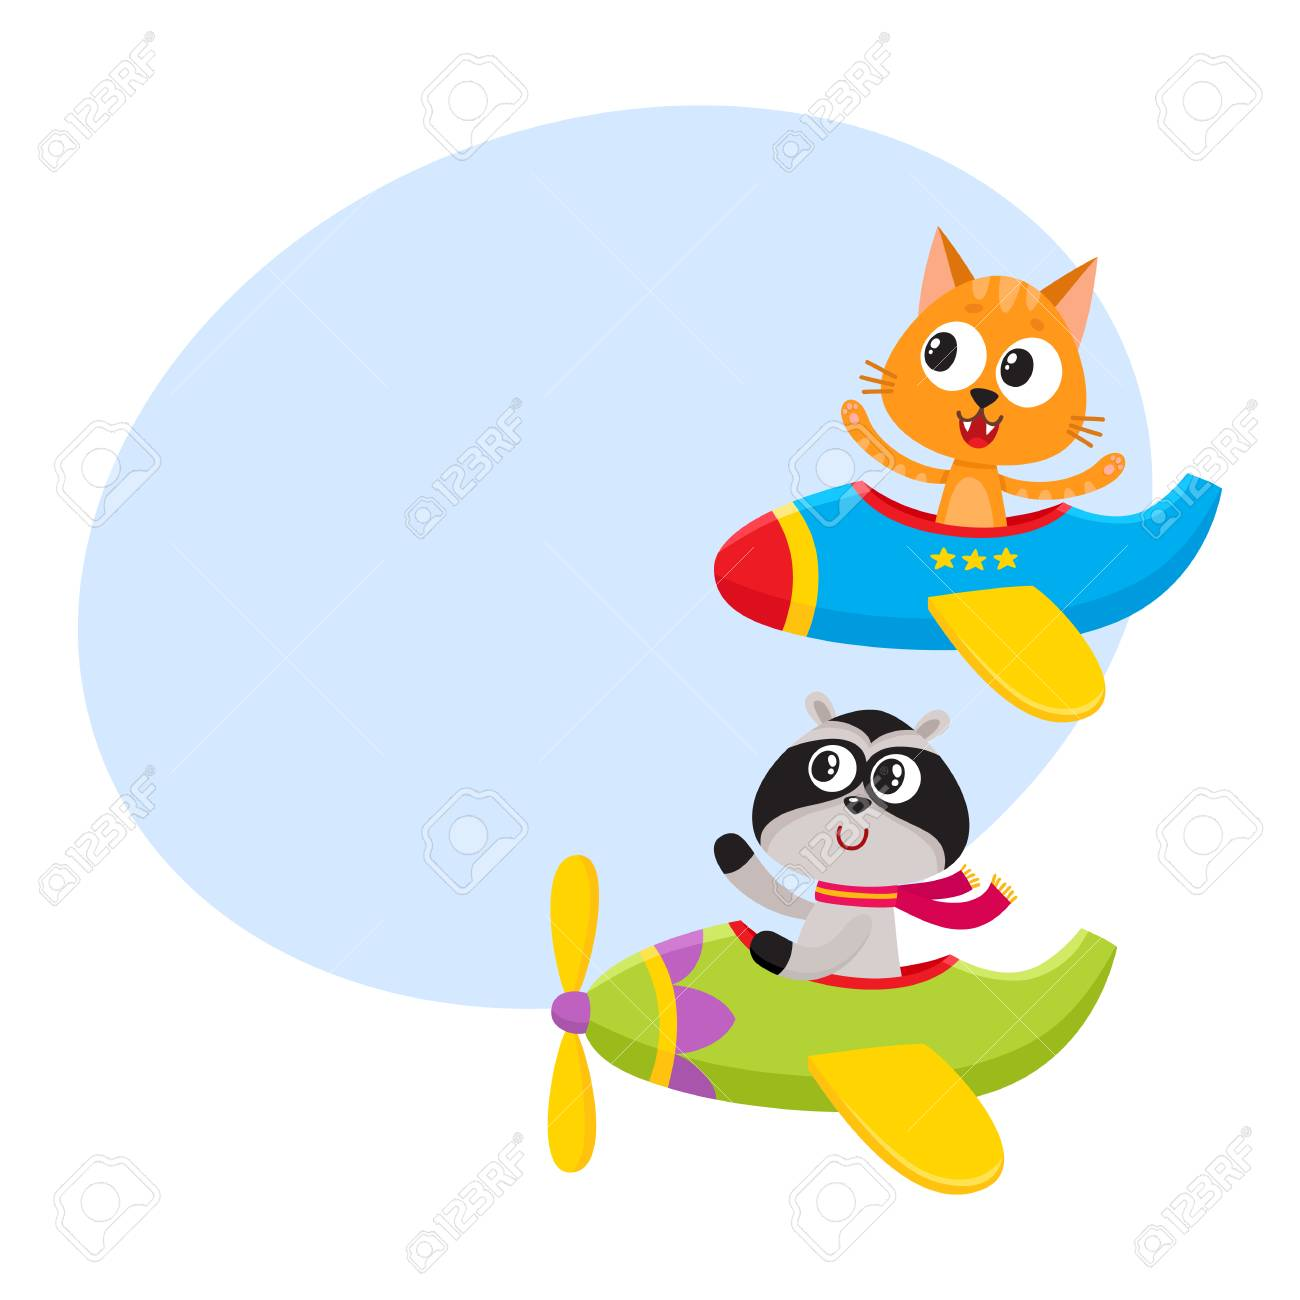 Cute Funny Animal Pilot Characters Flying On Airplane Cat And